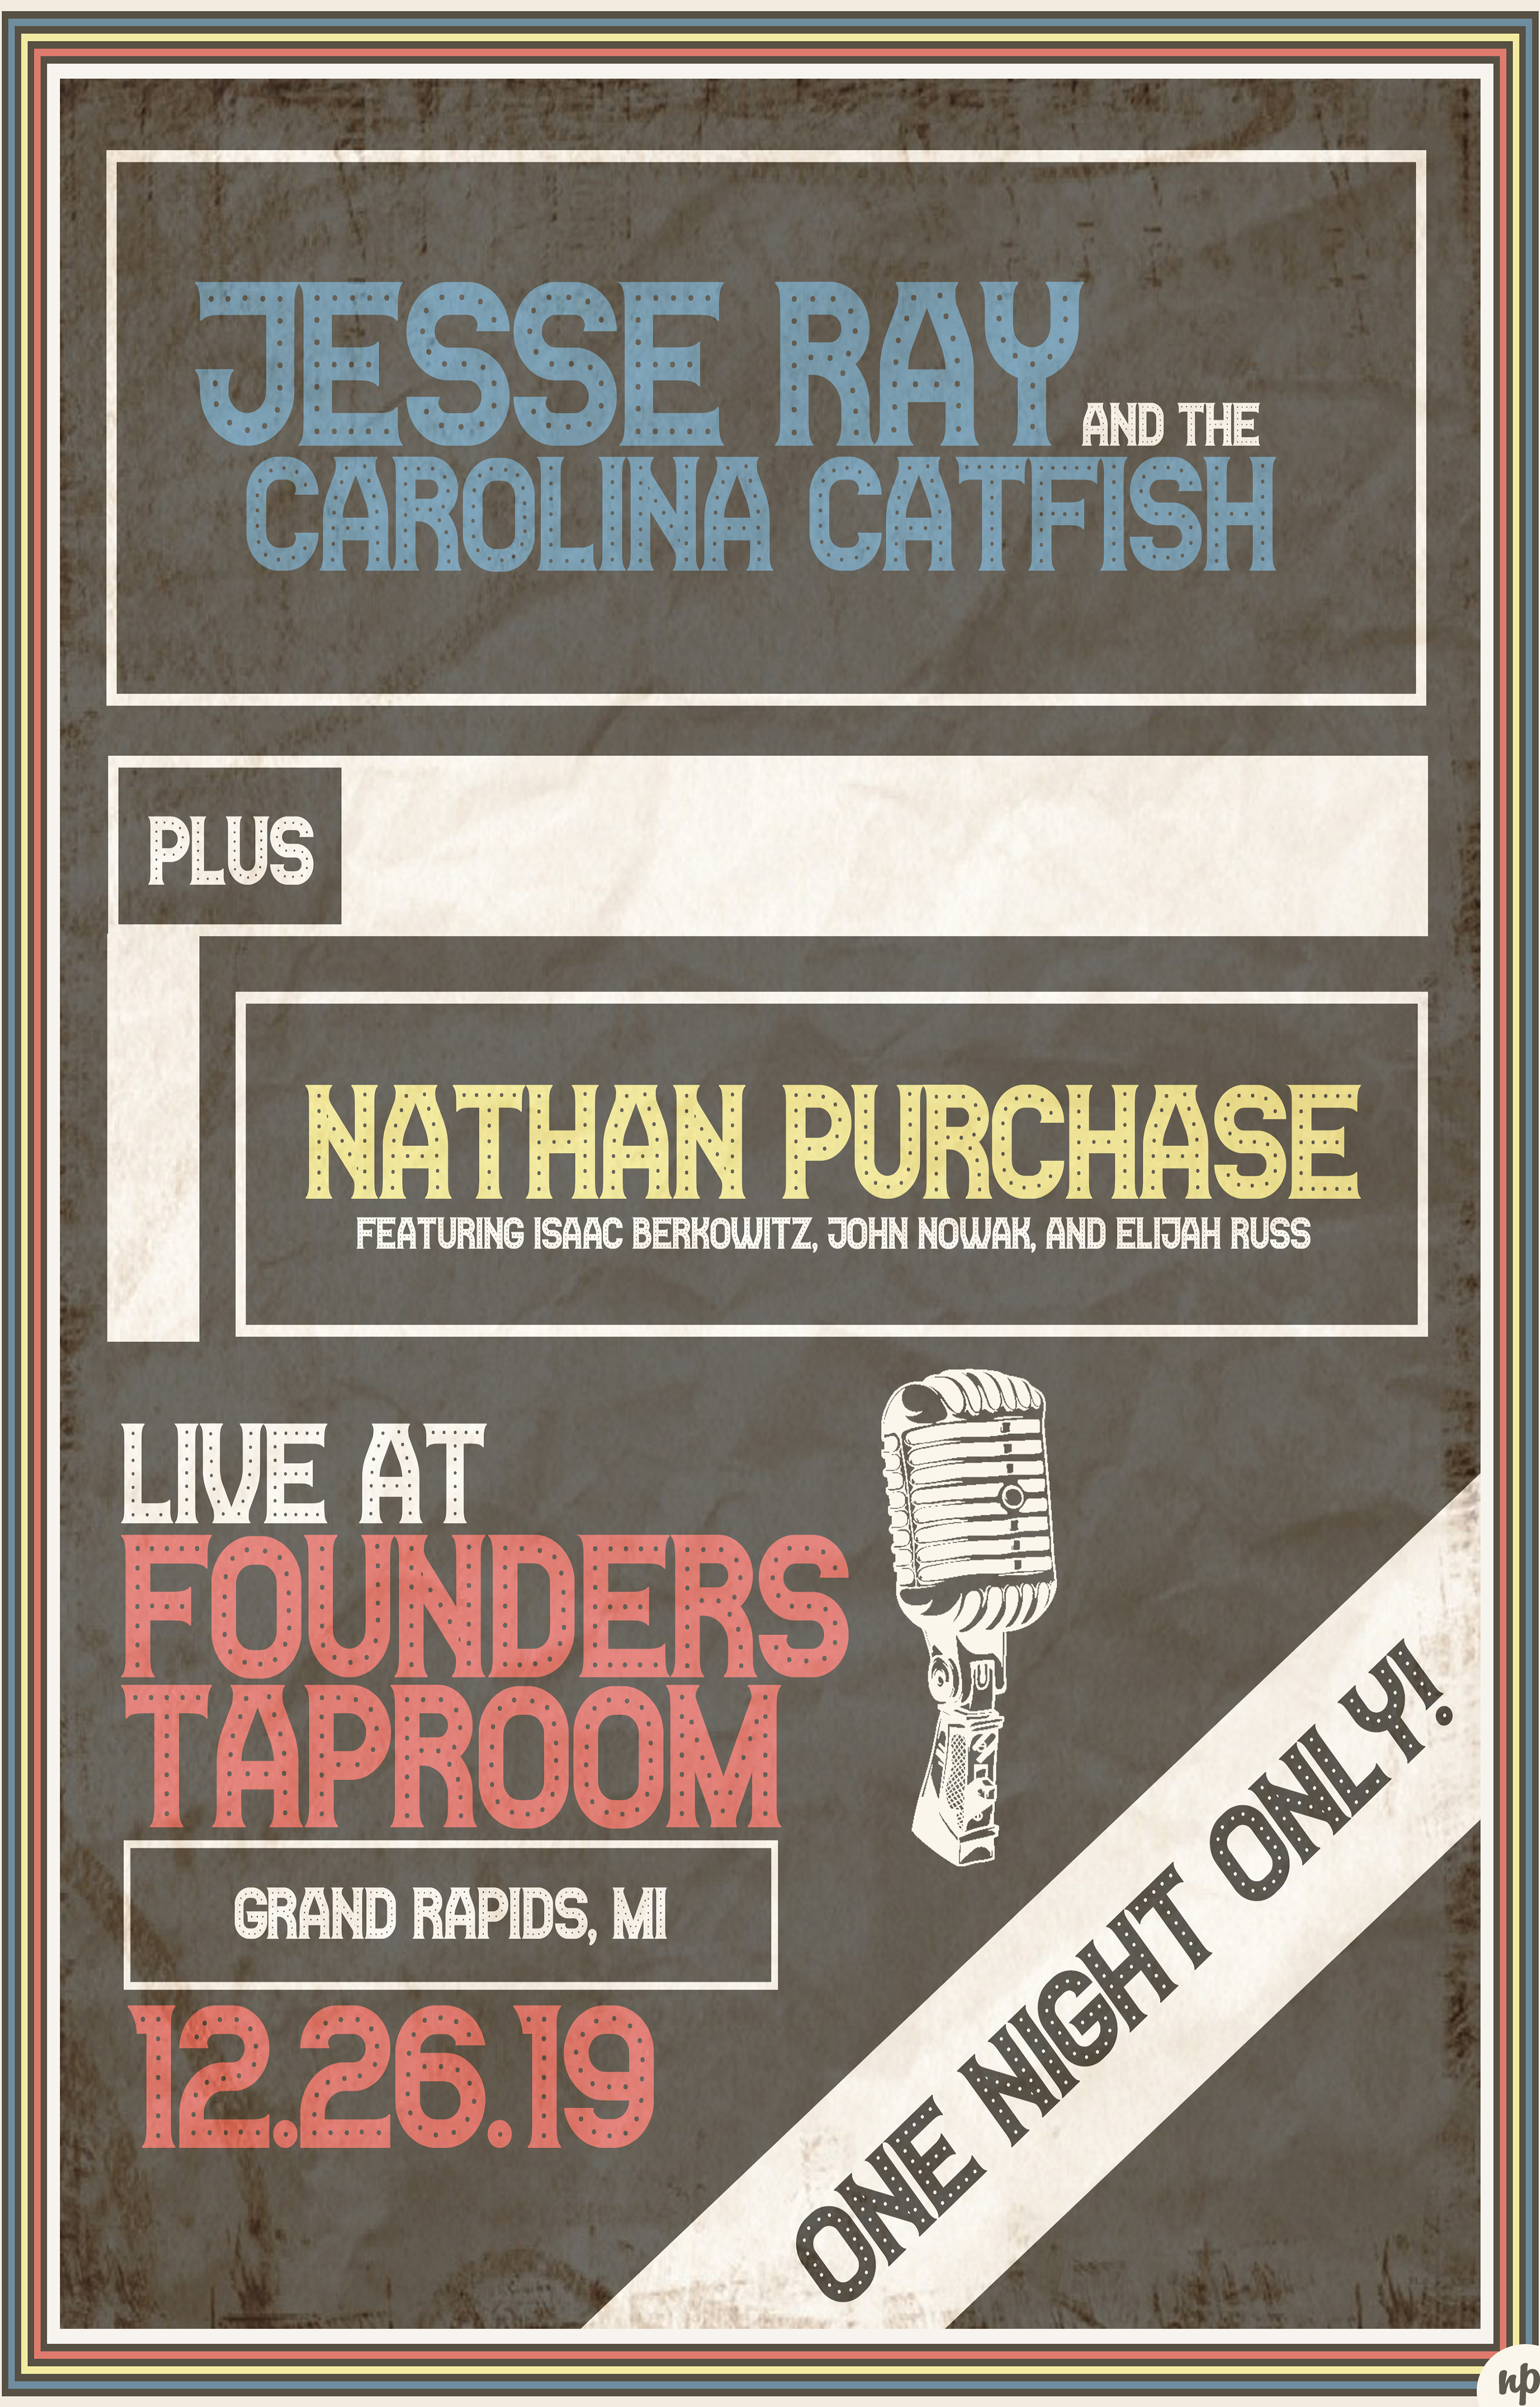 Jesse Ray and the Carolina Catfish and Nathan Purchase event poster